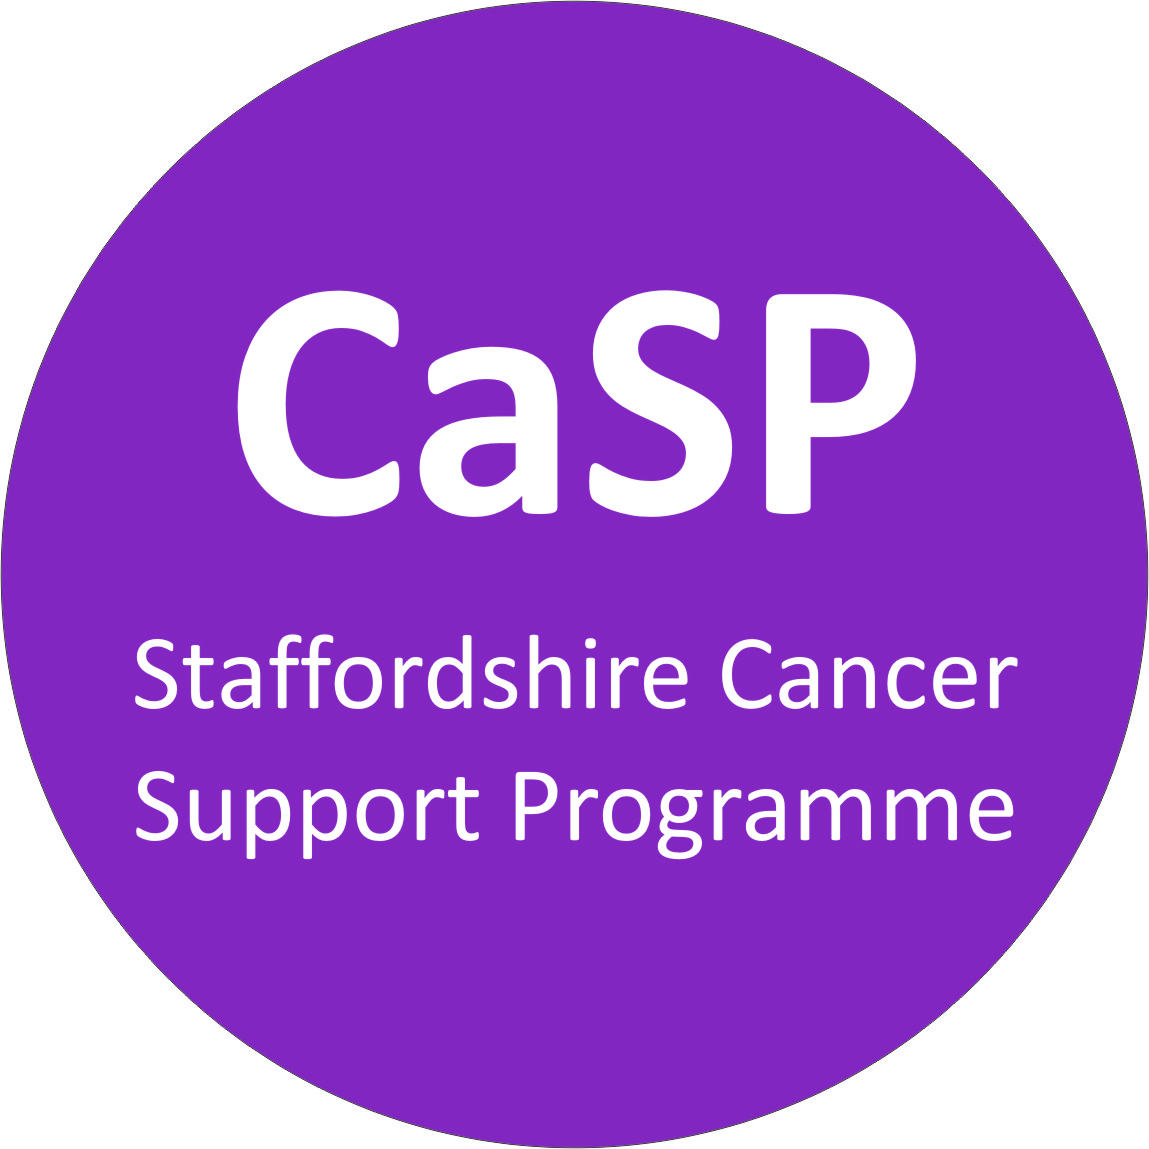 Statement - Cancer Support Service